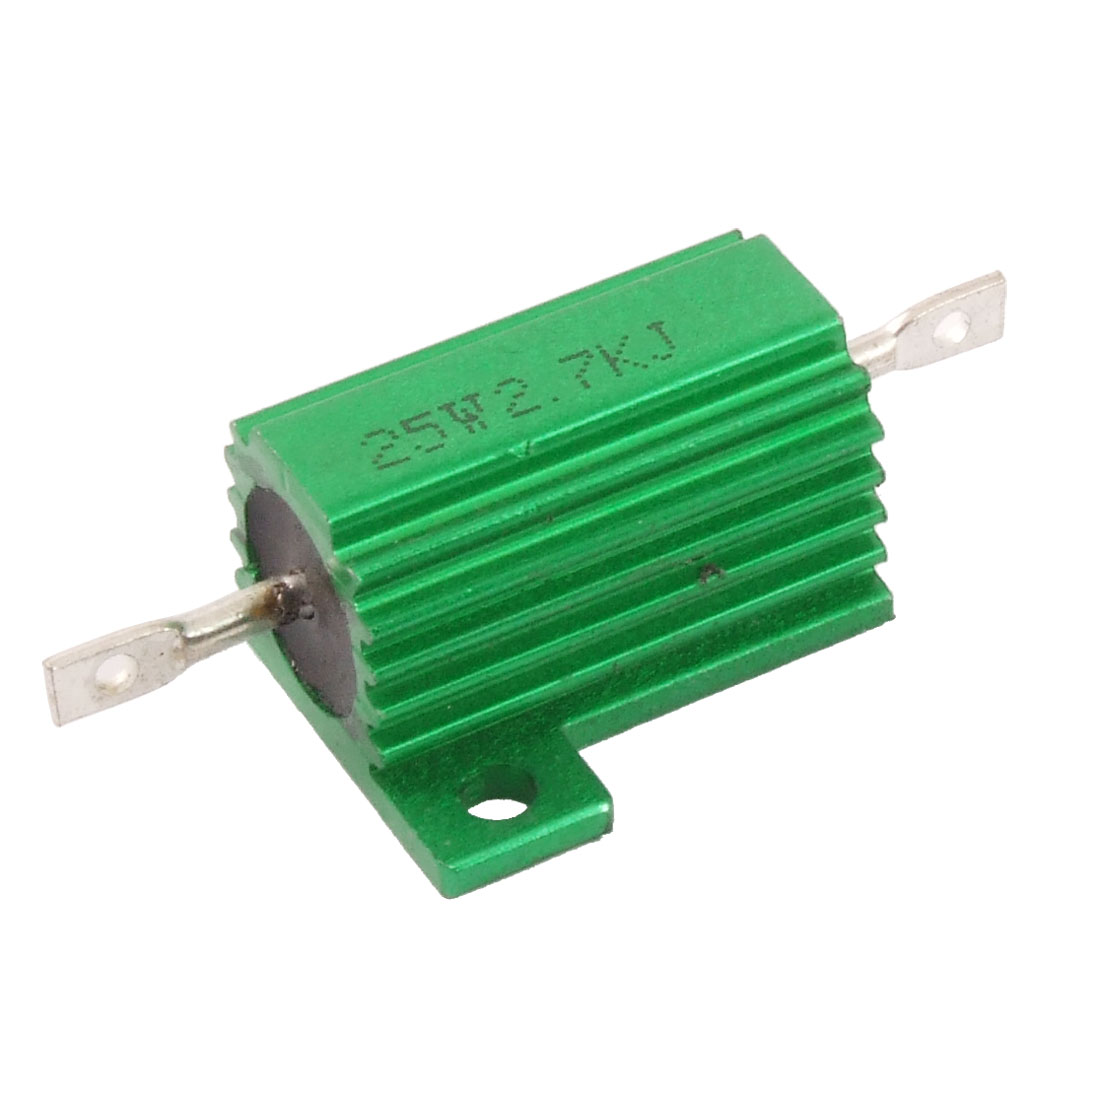 Green 25 Watt 2.7K Ohm 5% Aluminum Shell Wire Wound Resistor